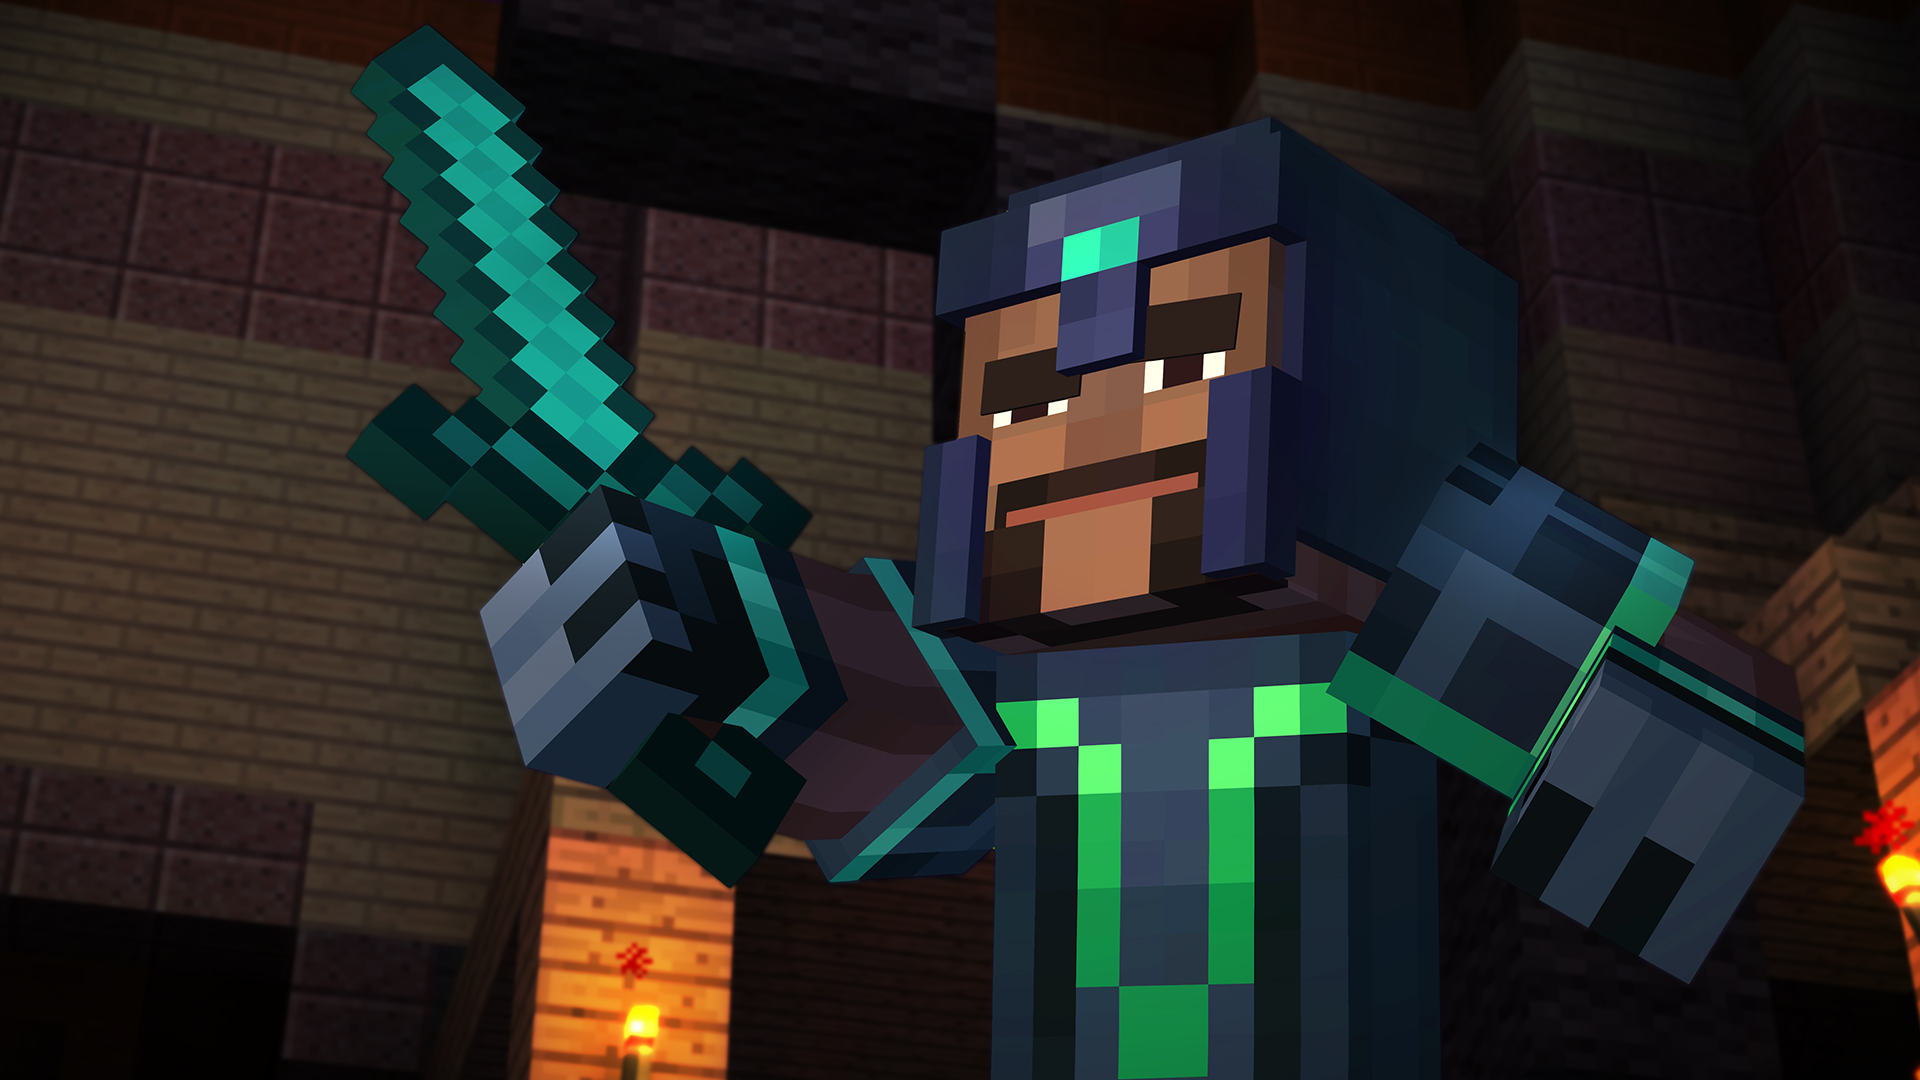 Minecraft Story Mode A Telltale Games Series On Steam - Minecraft spielen kostenlos deutsch online